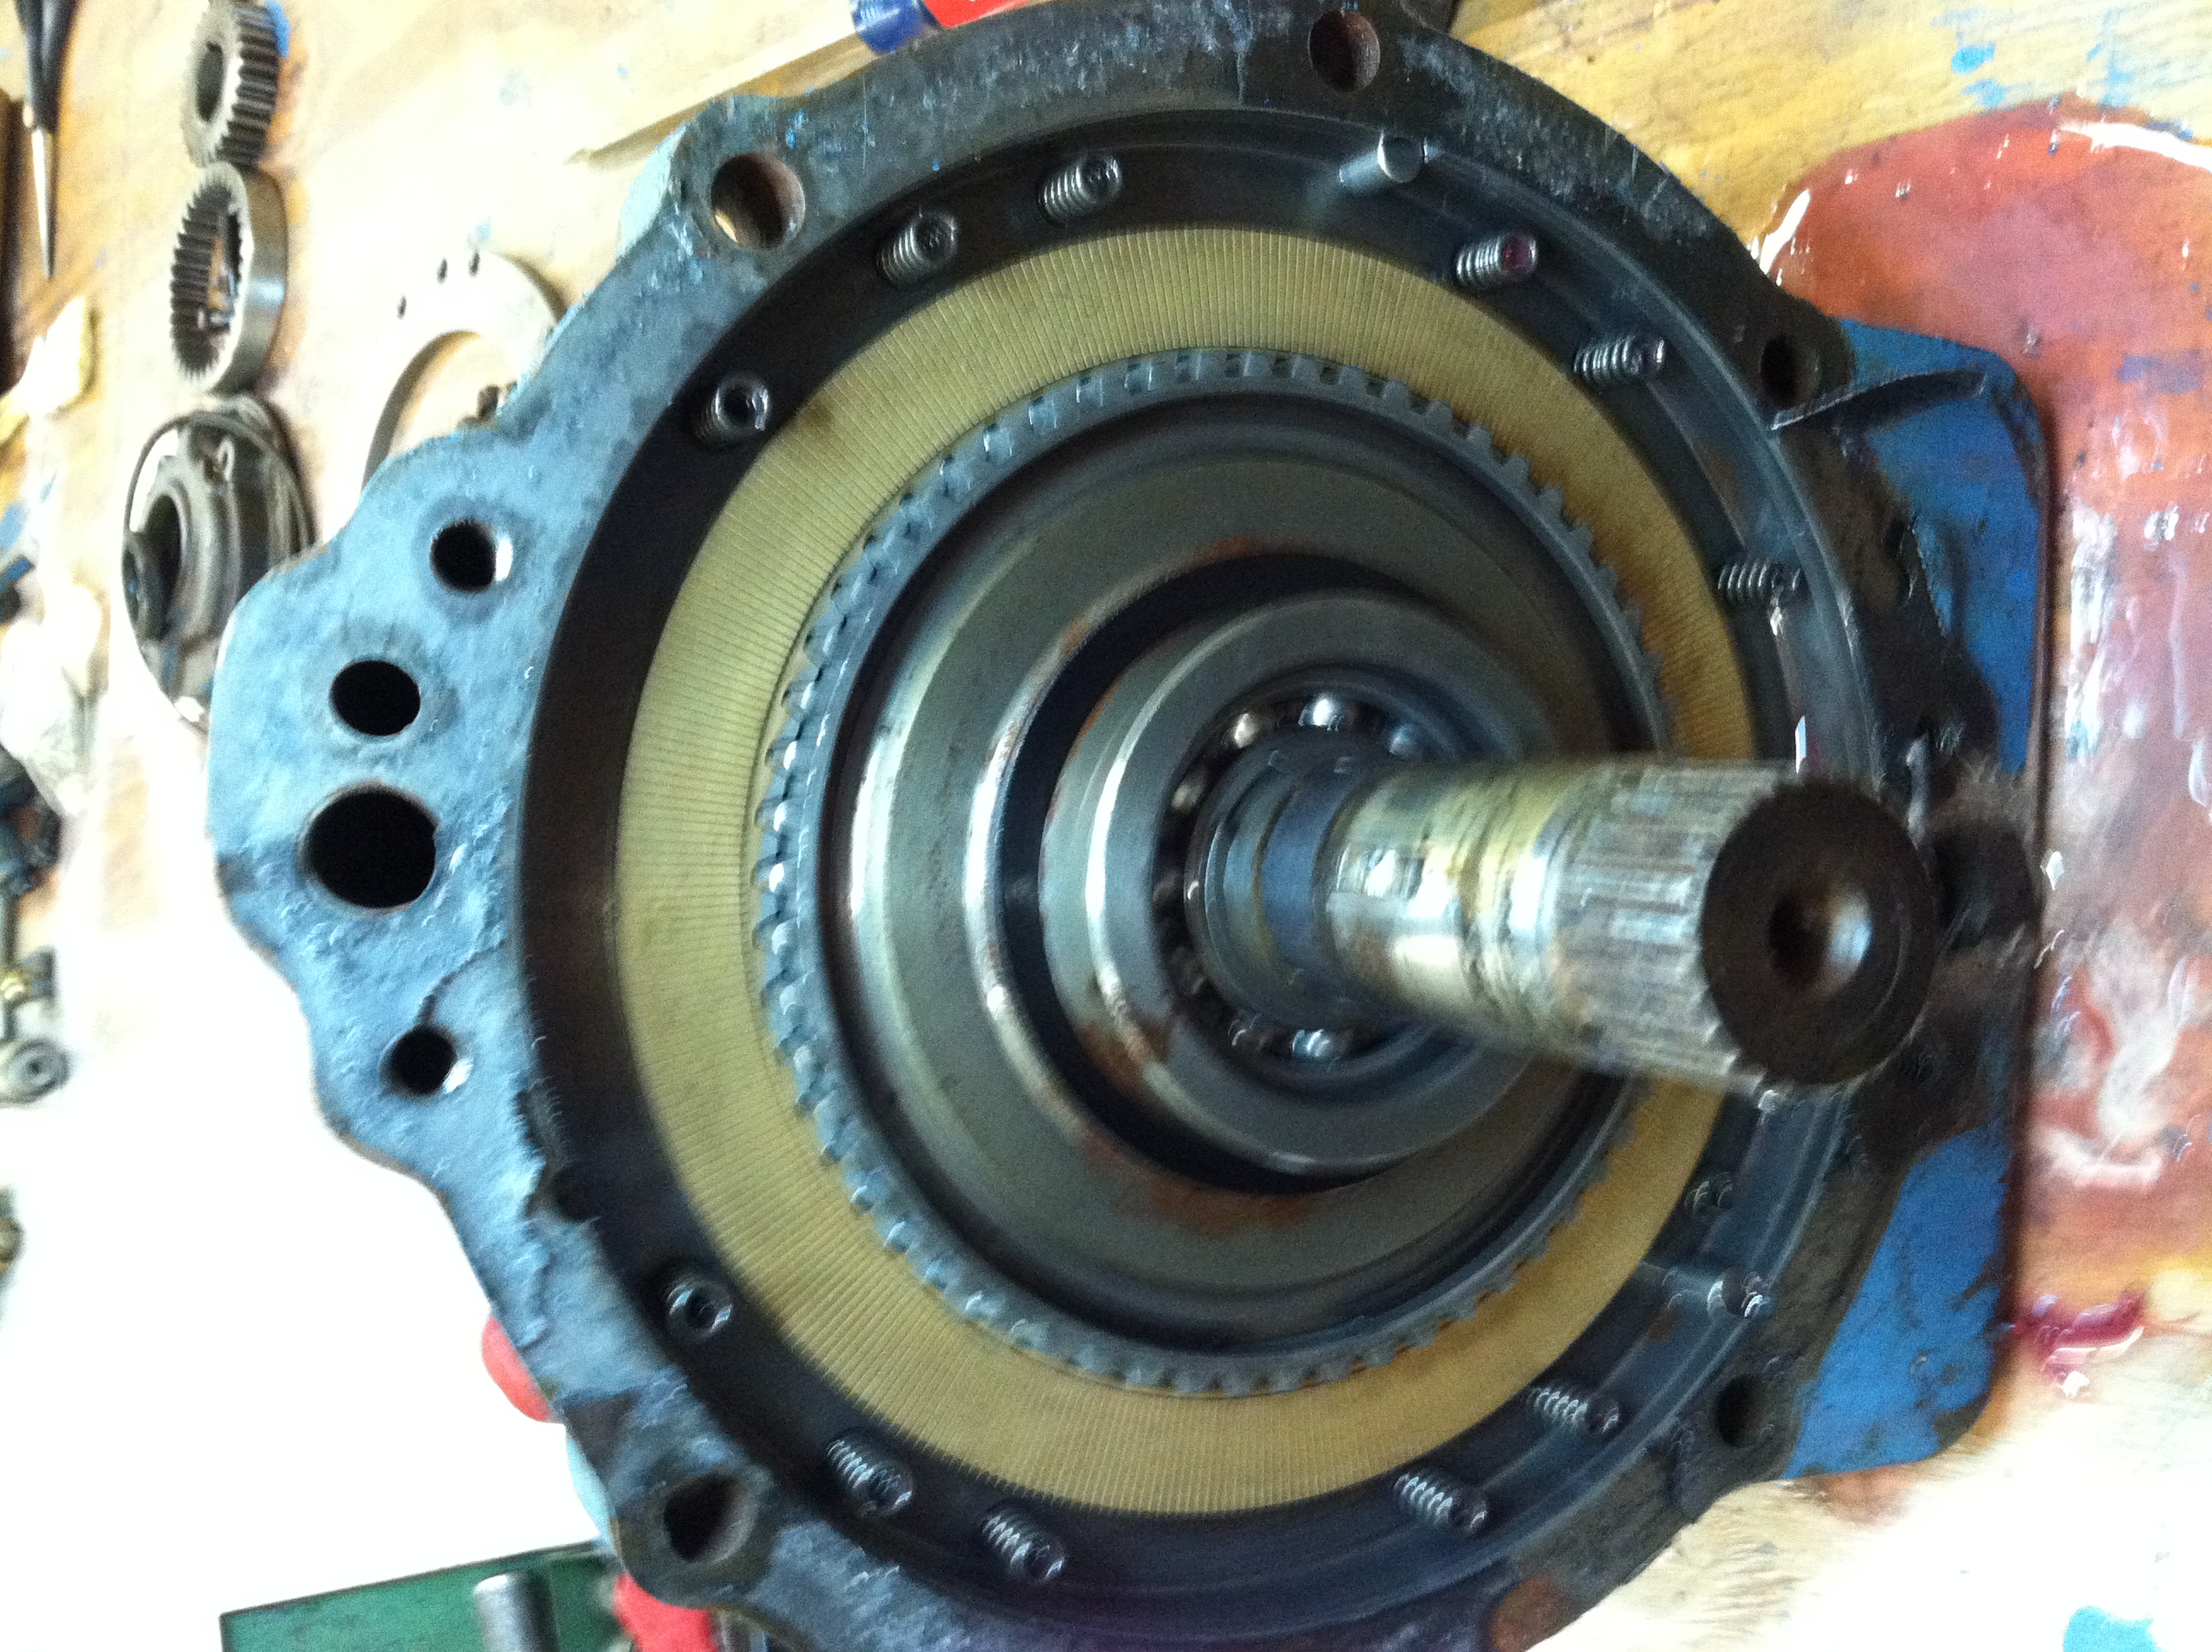 How To Drive Manual >> Disassembly Pictures Borg Warner Velvet Drive 1:1 71C